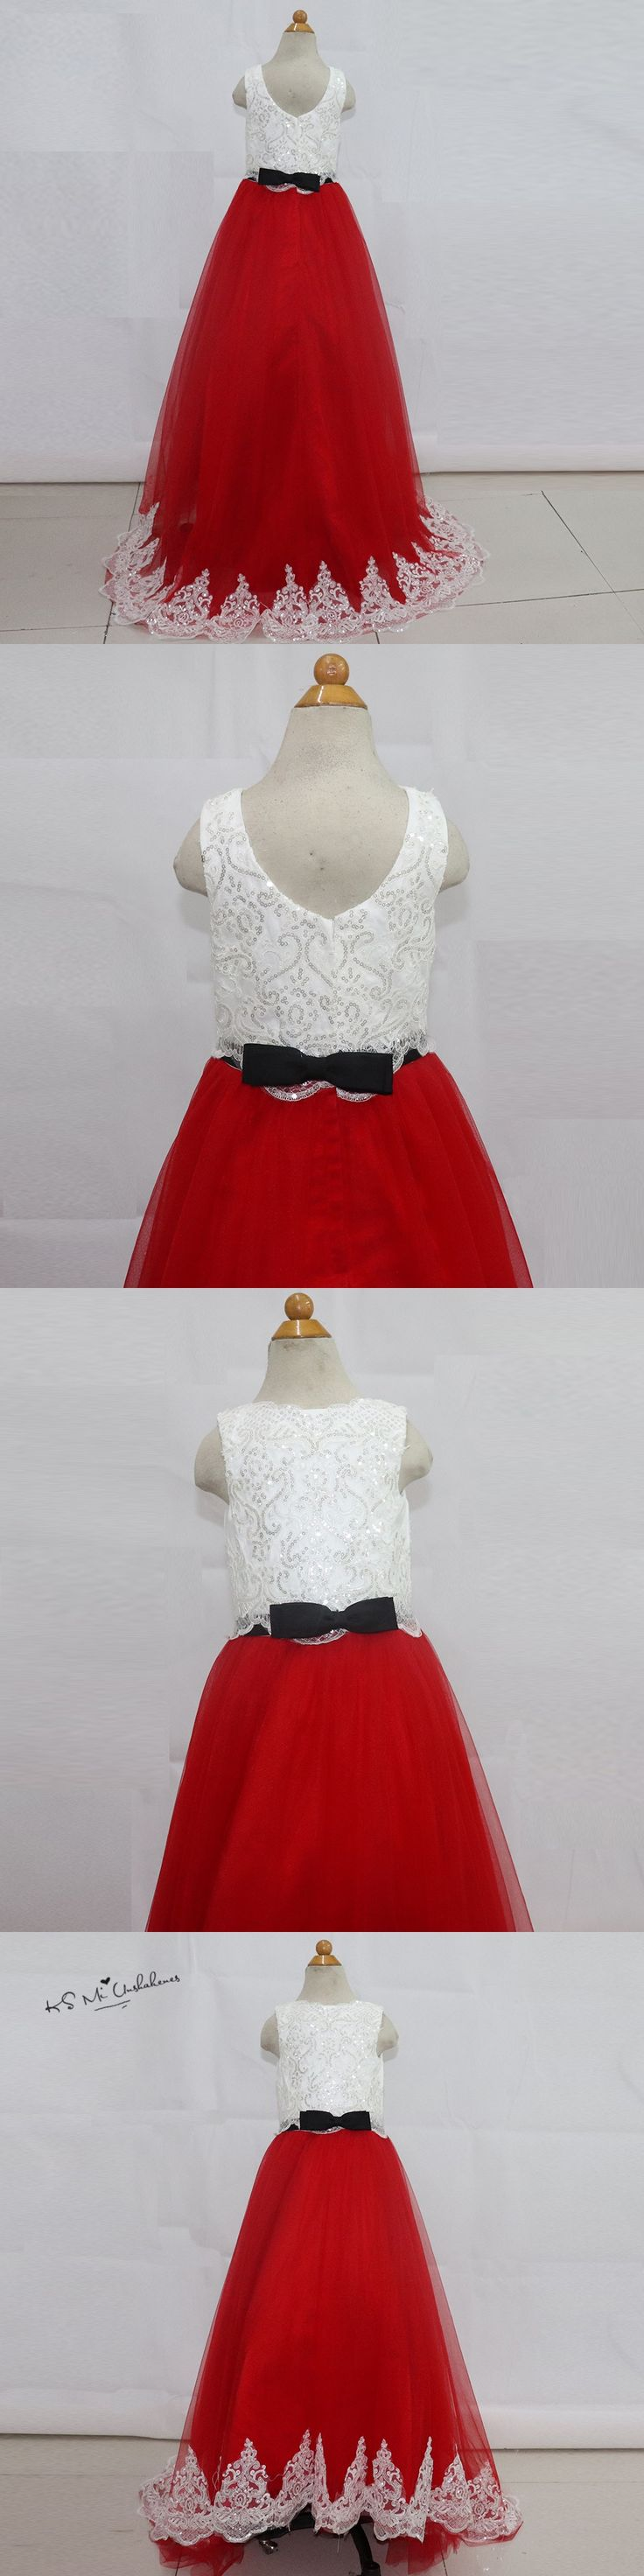 Robe de Soiree Enfant Fille White Red Sequined Lace Kids Evening Gowns Holy Communion Dresses Kids Beauty Pageant Prom Dress